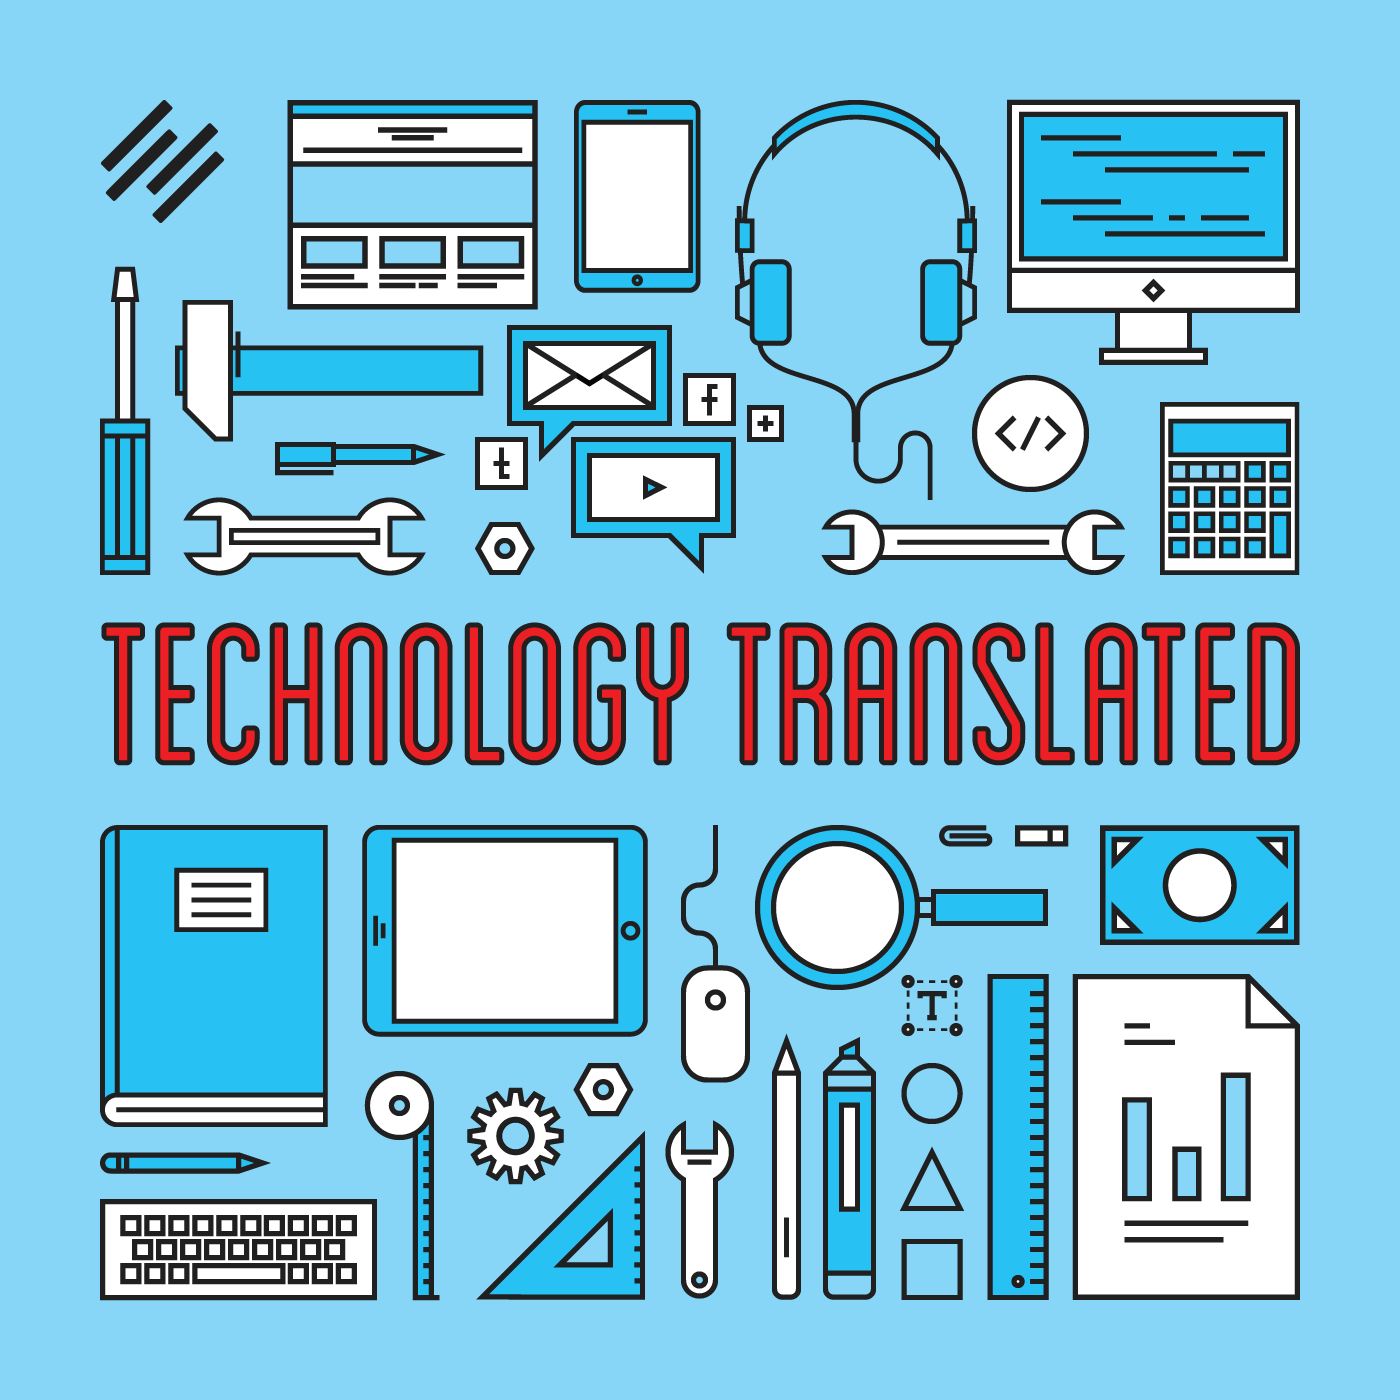 Technology Translated